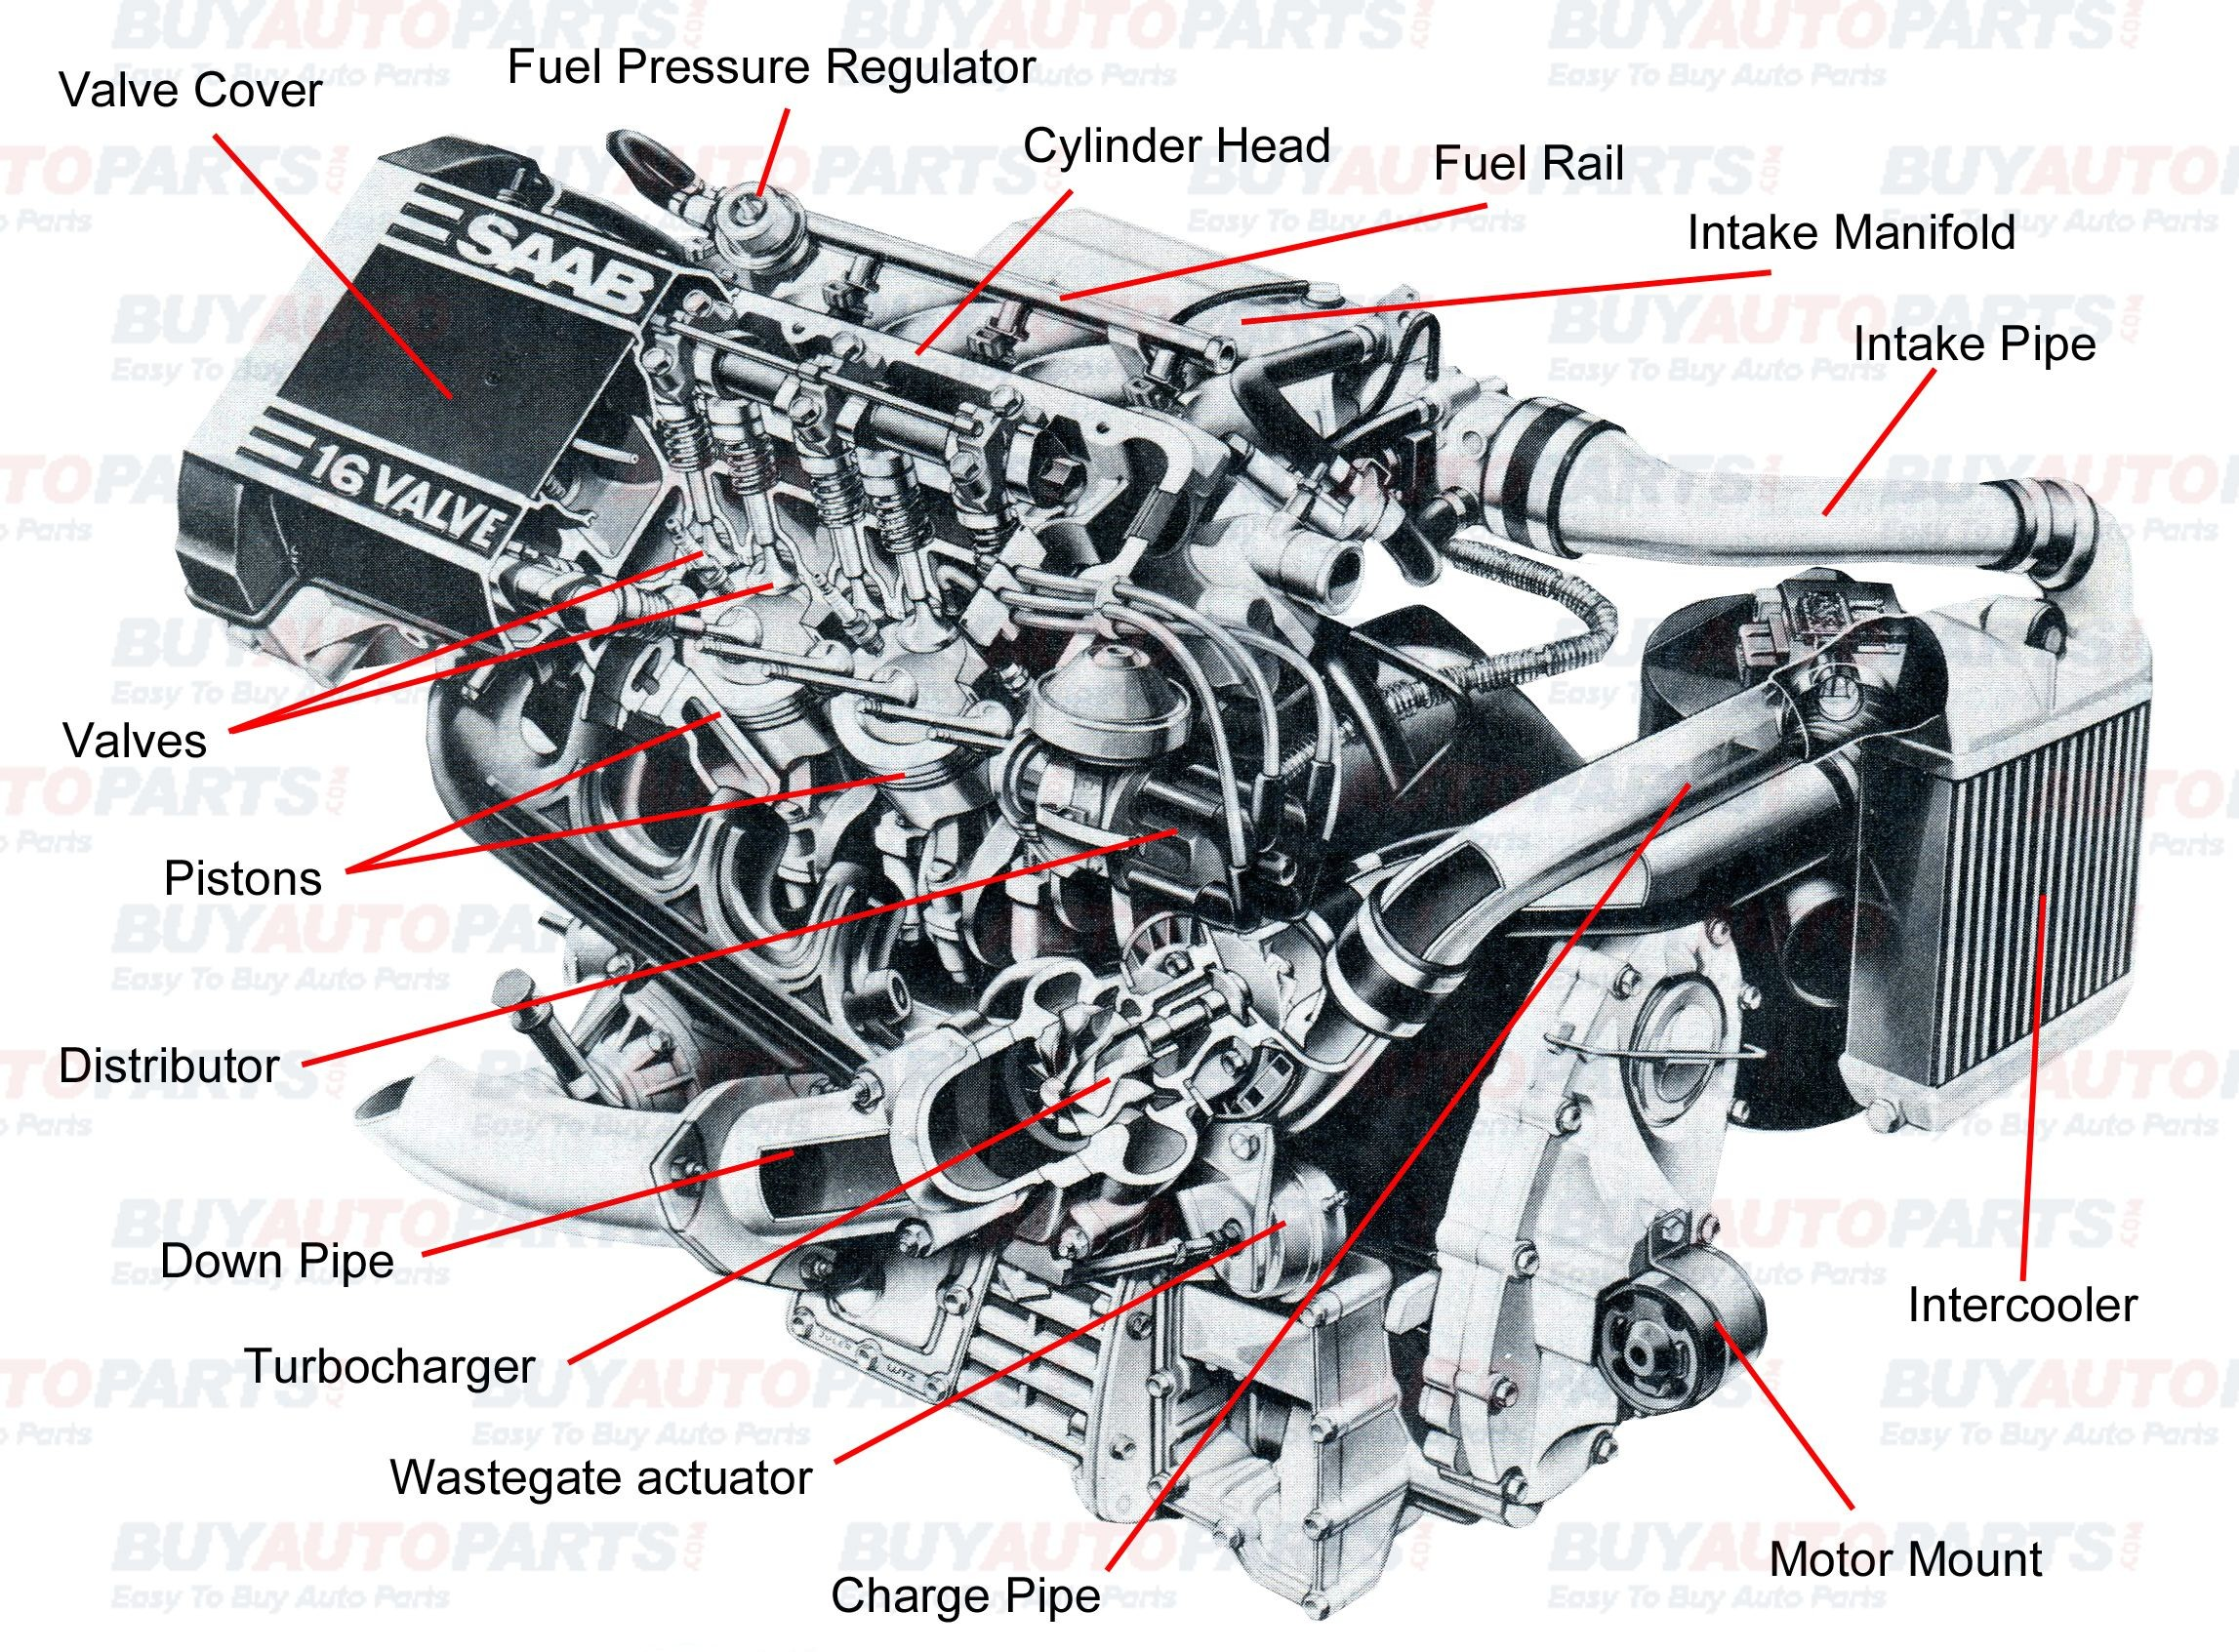 Diagram Of Car Engine Parts All Internal Bustion Engines Have the Same Basic Ponents the Of Diagram Of Car Engine Parts